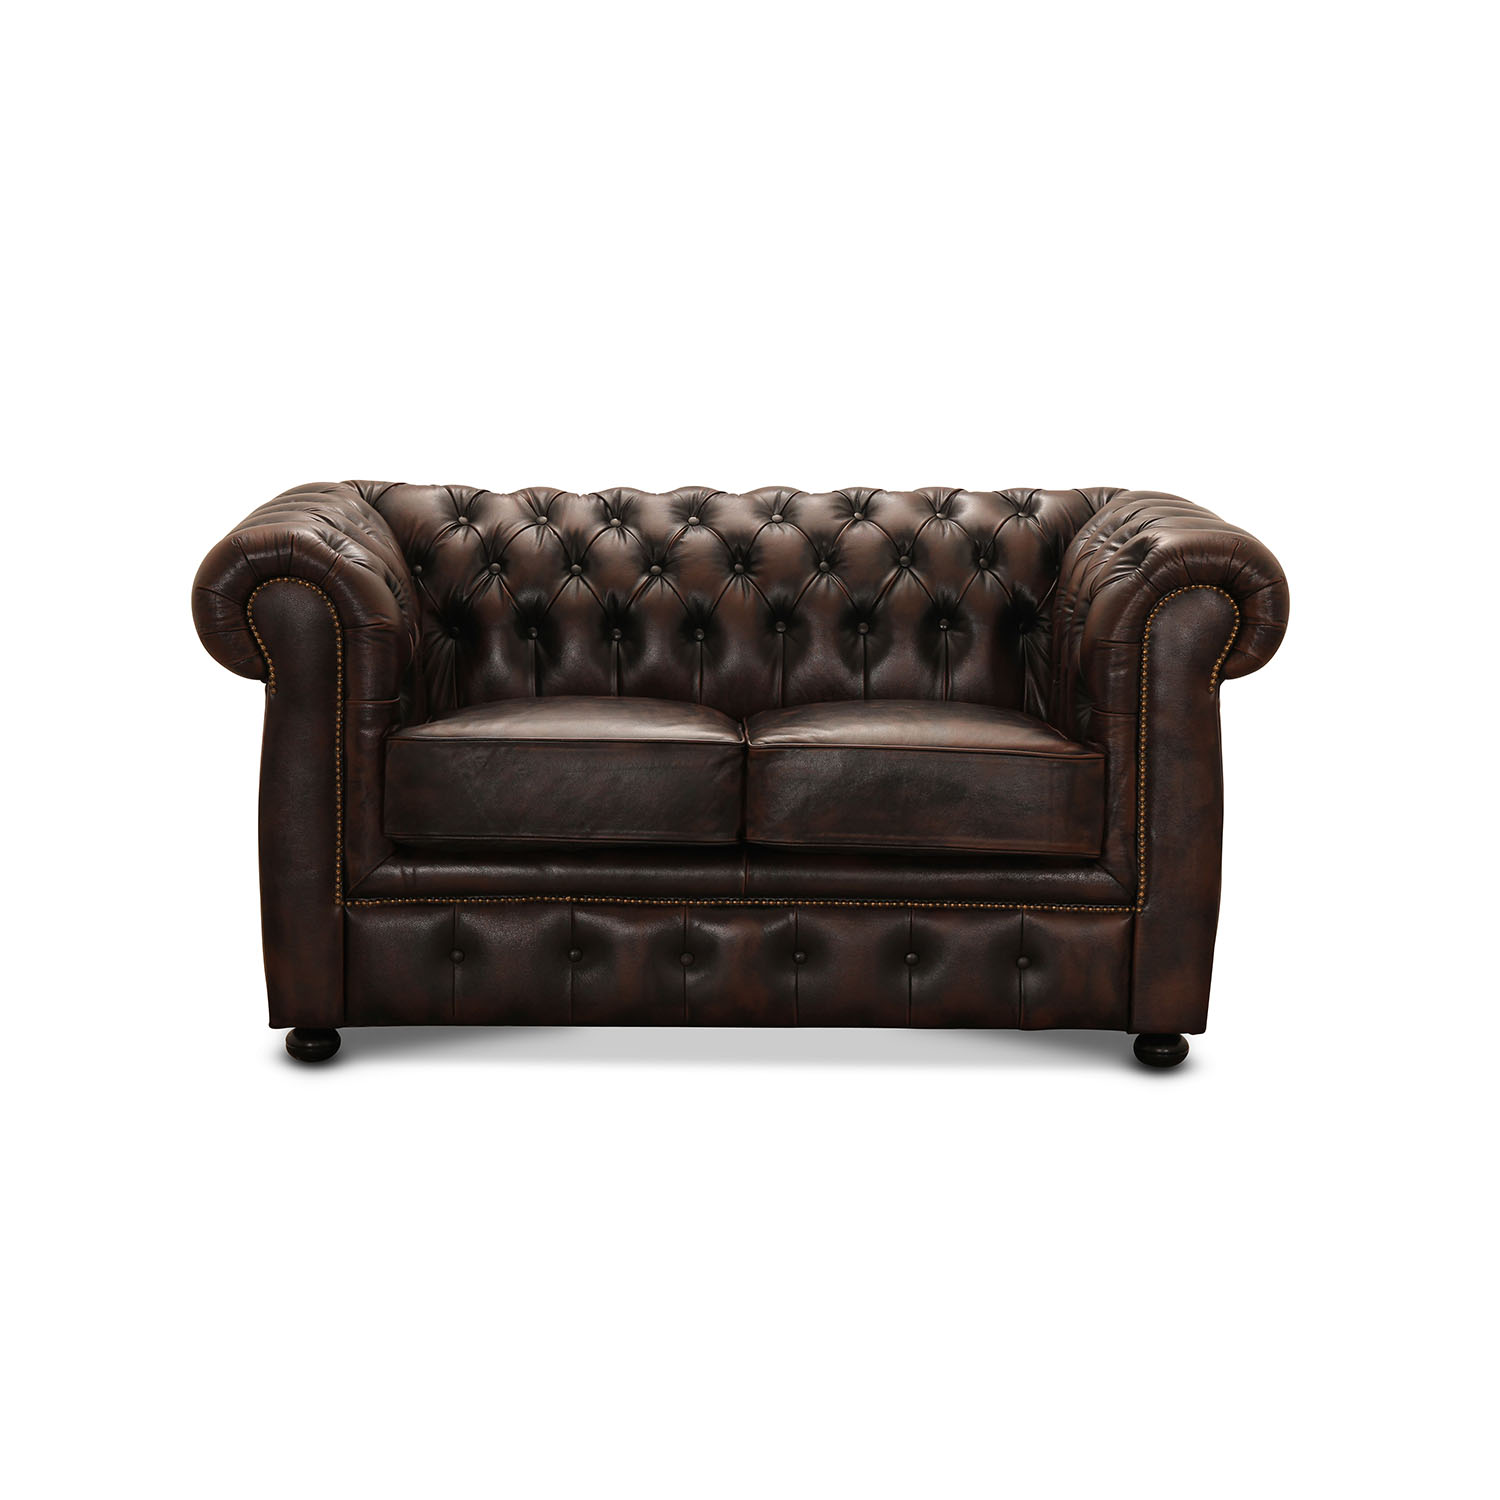 Image of   HAGA Liverpool 2 pers. chesterfield sofa - brun læder